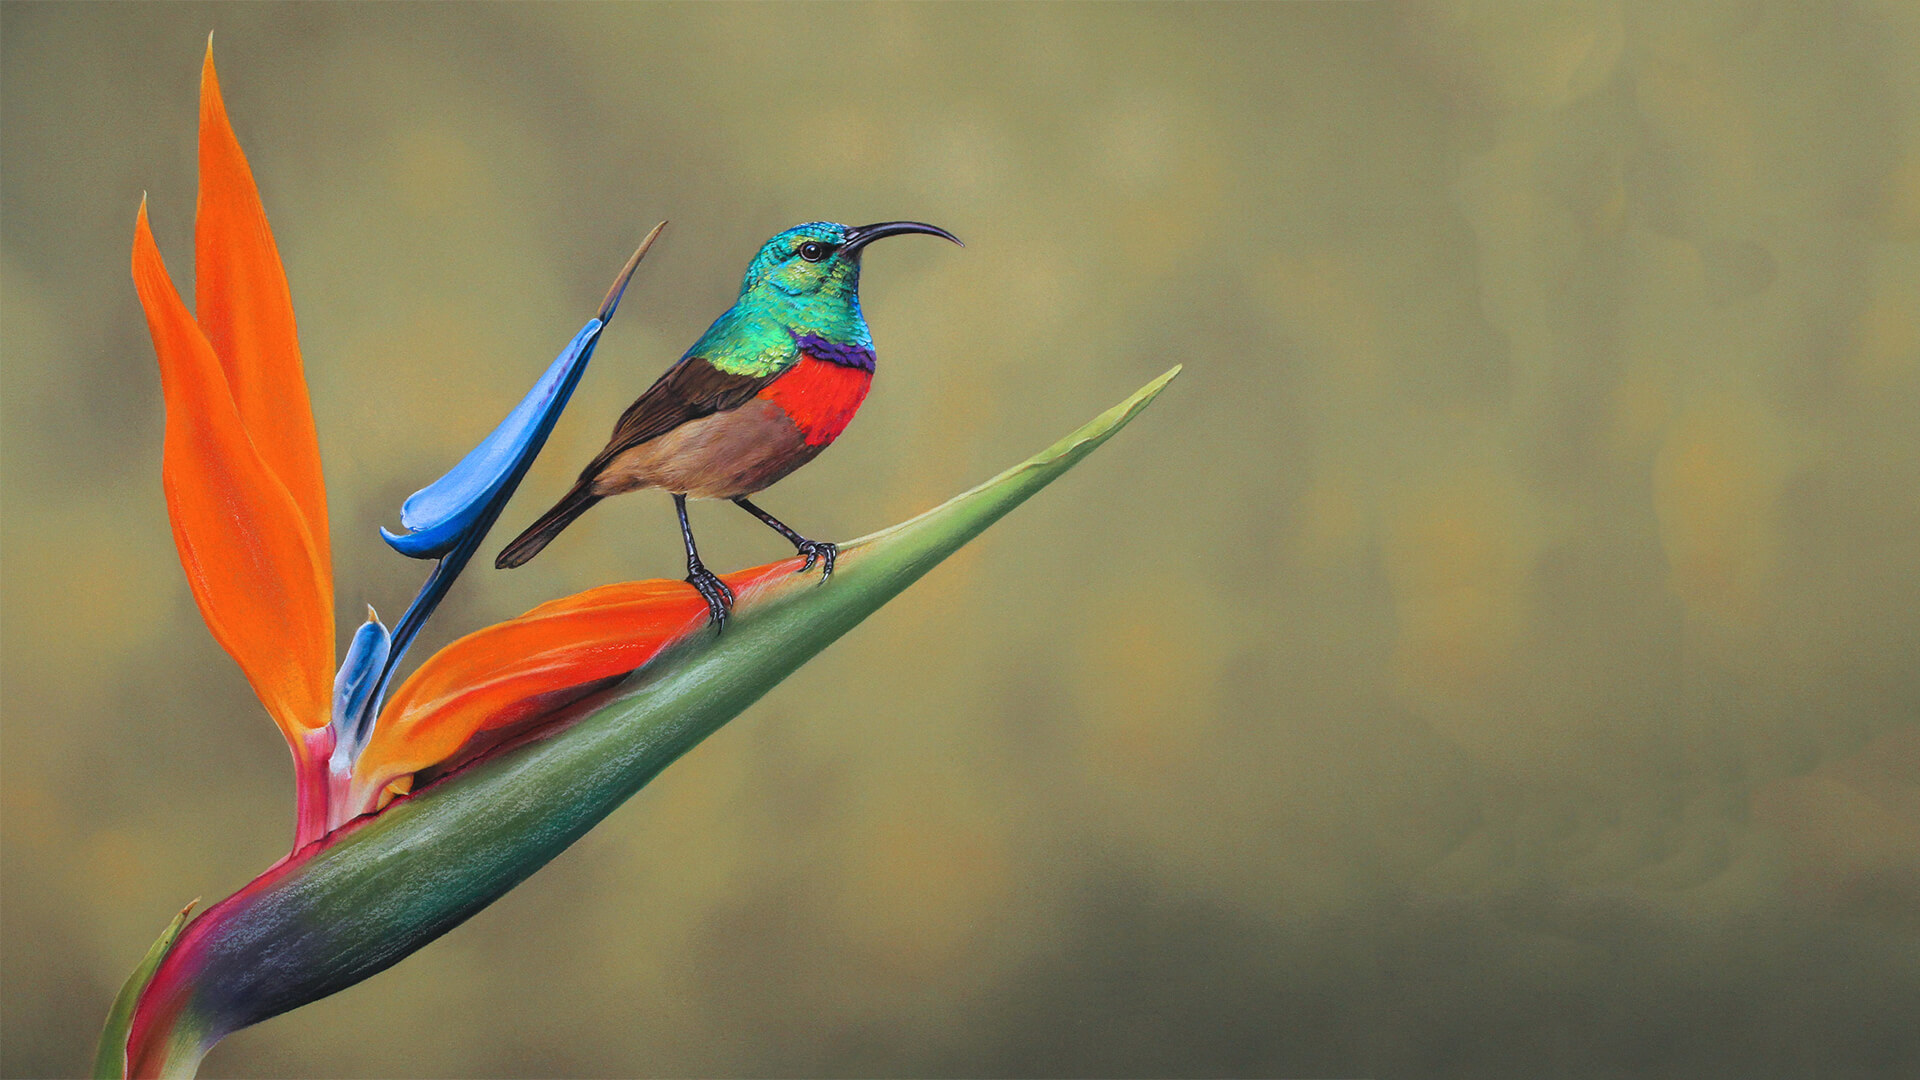 Download Wallpaper 1920x1080 birds, flying, colorful